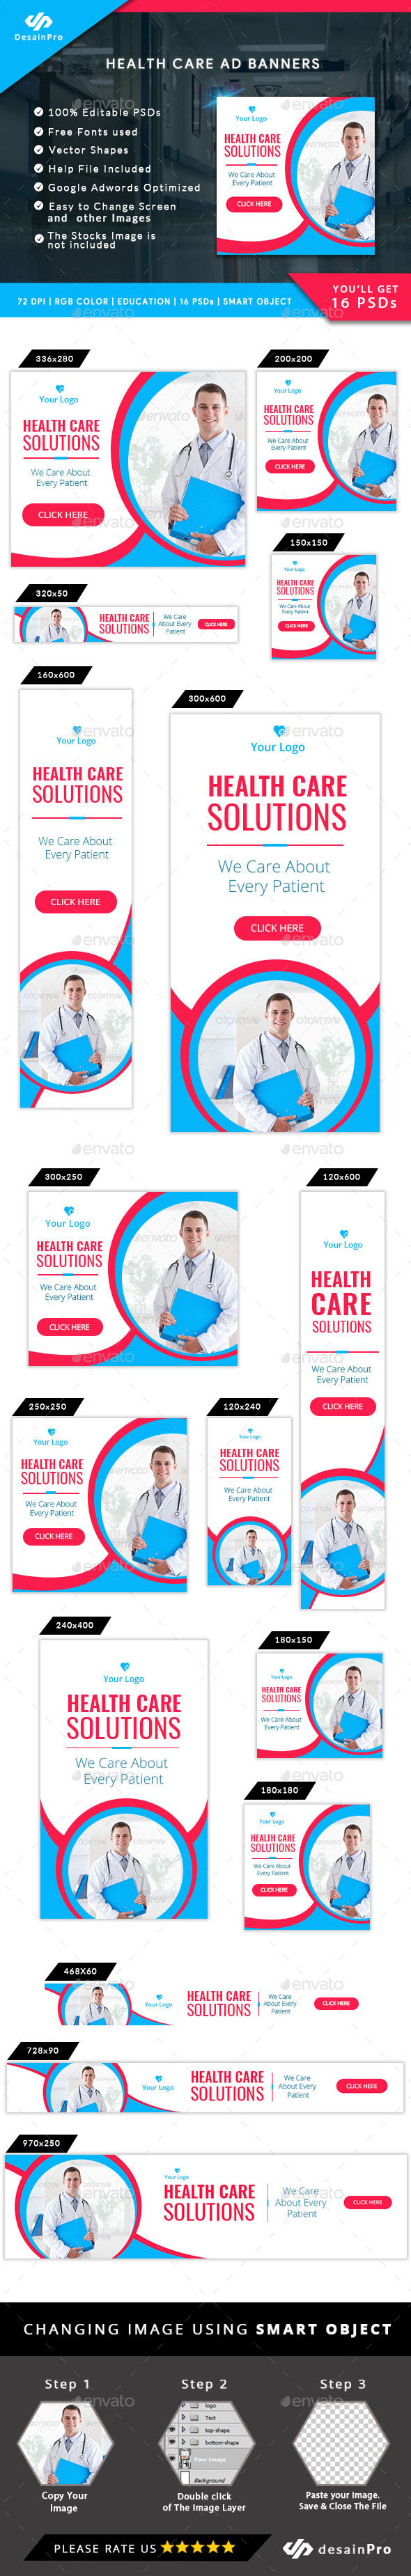 Healthcare Service Ad Banner - AR - Banners & Ads Web Elements